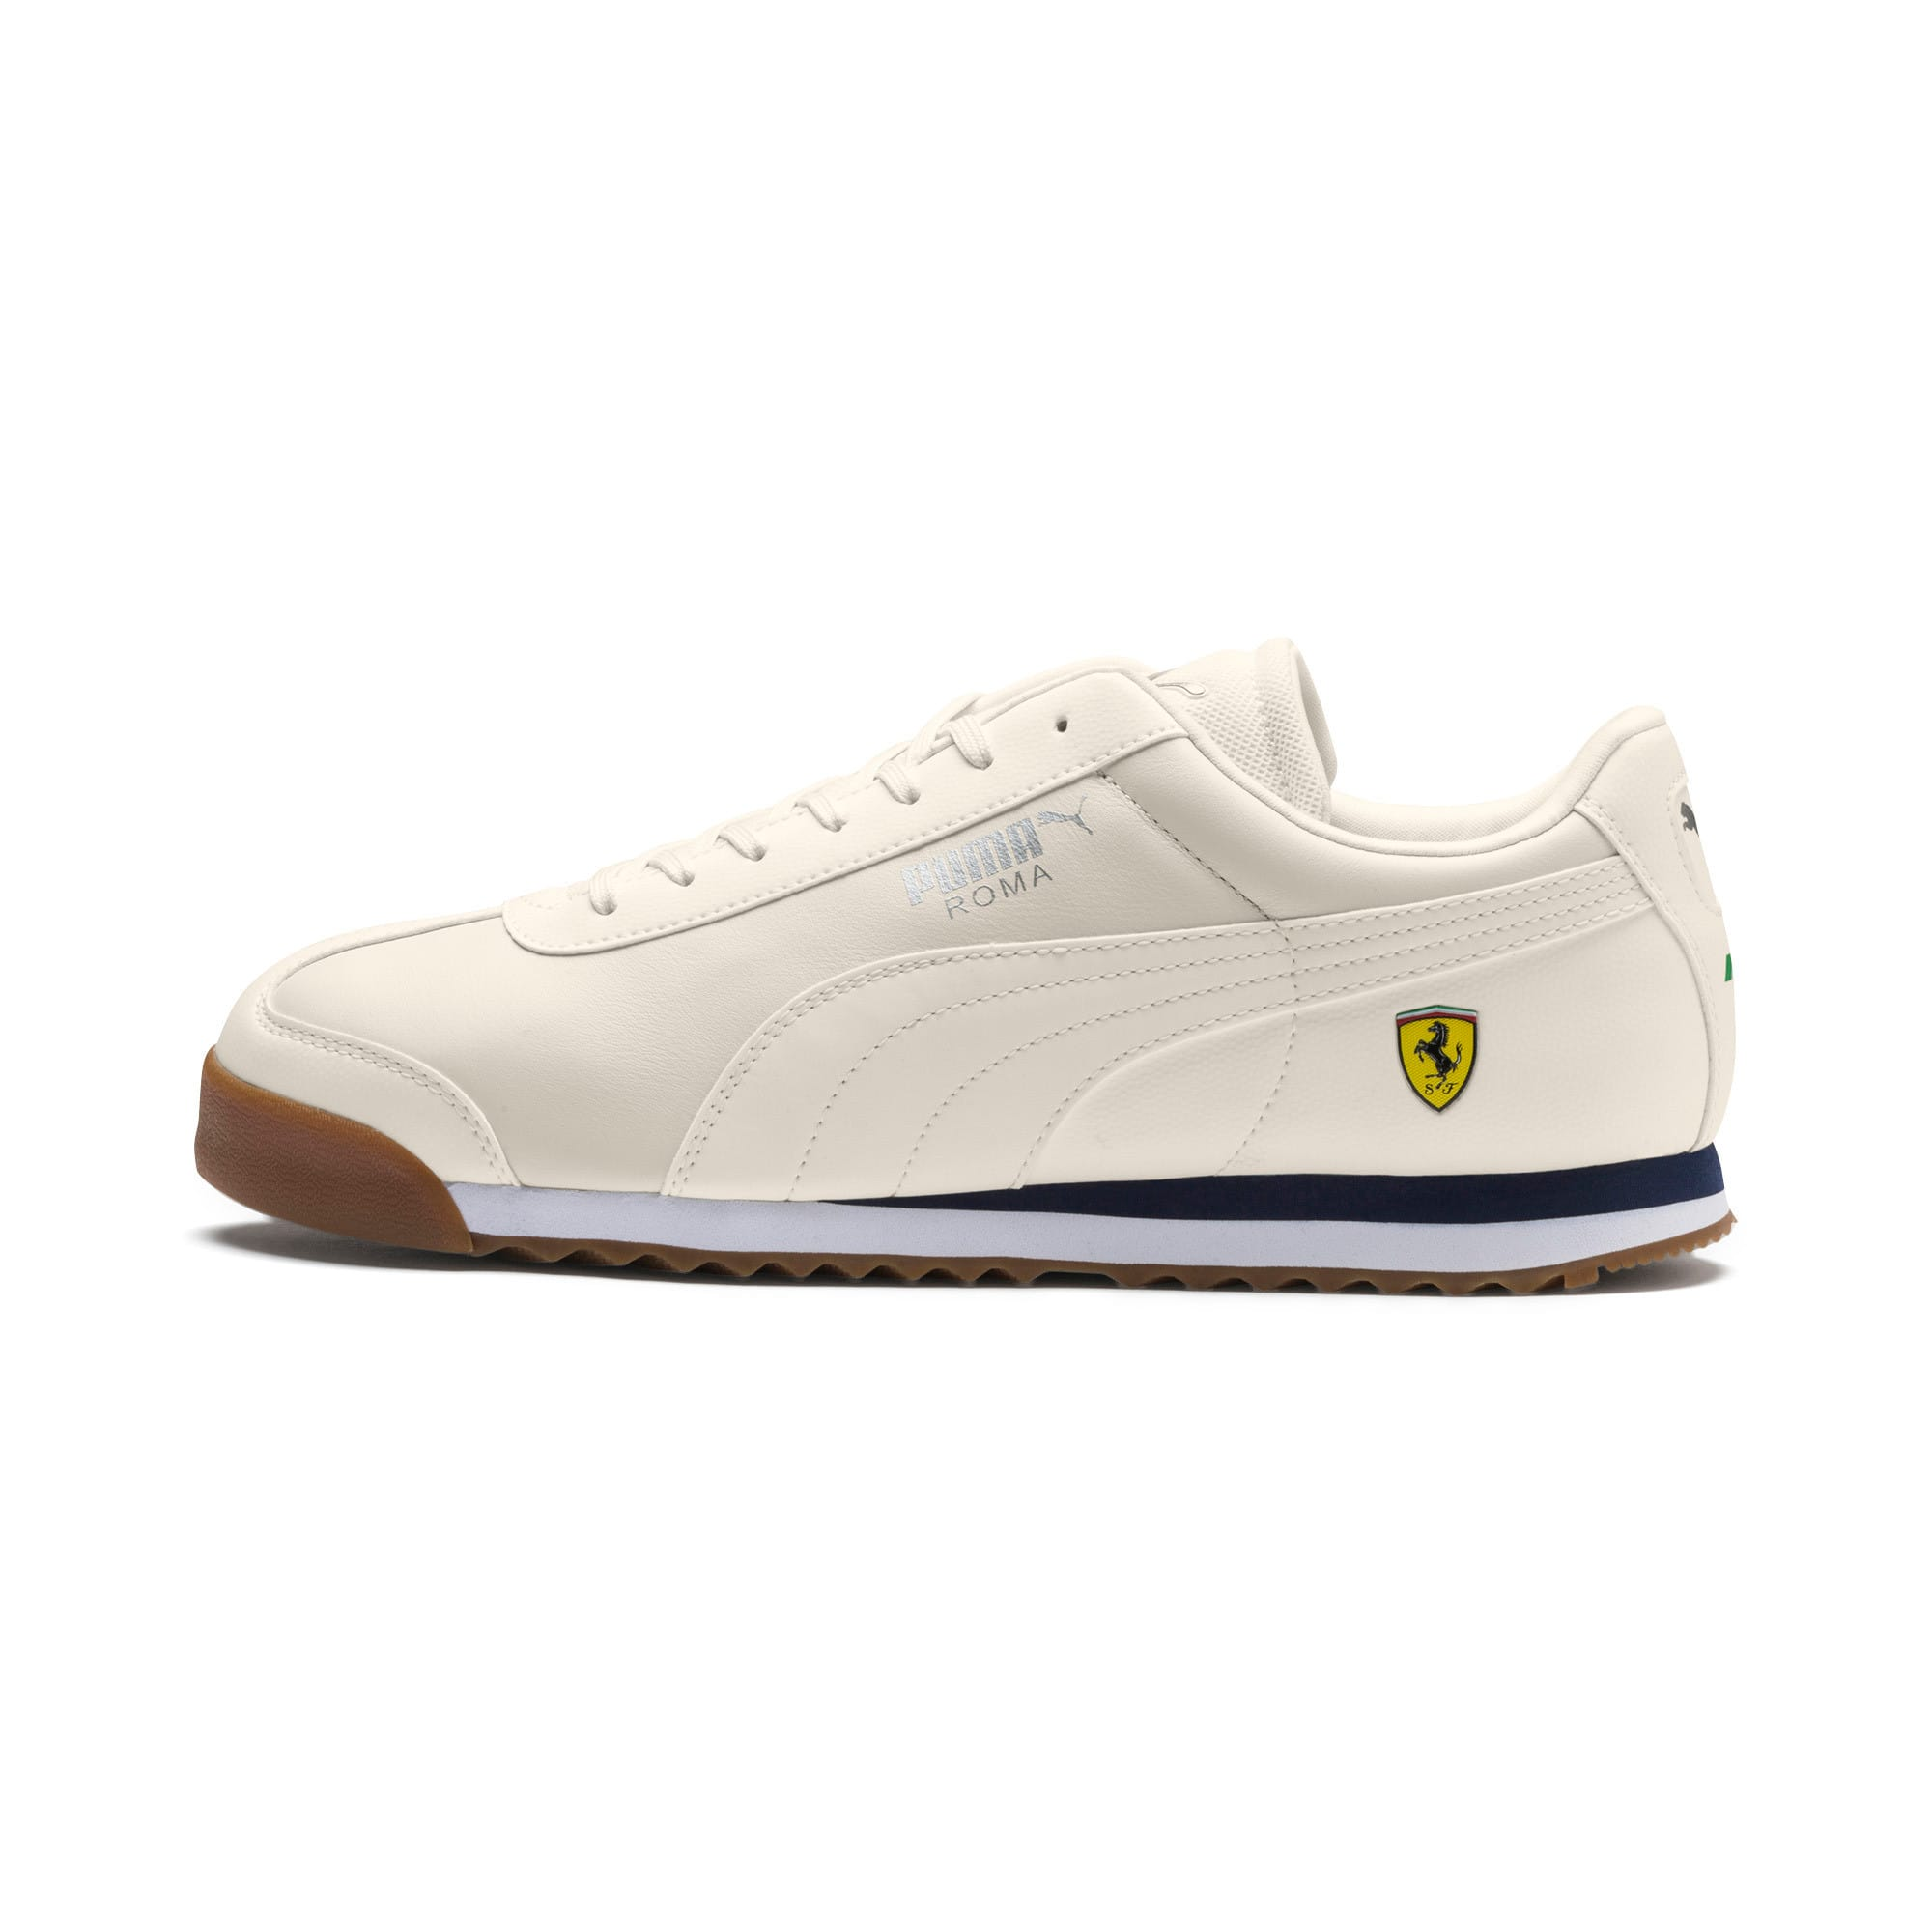 Thumbnail 1 of Scuderia Ferrari Roma Men's Sneakers, Whisper White-Whisper White, medium